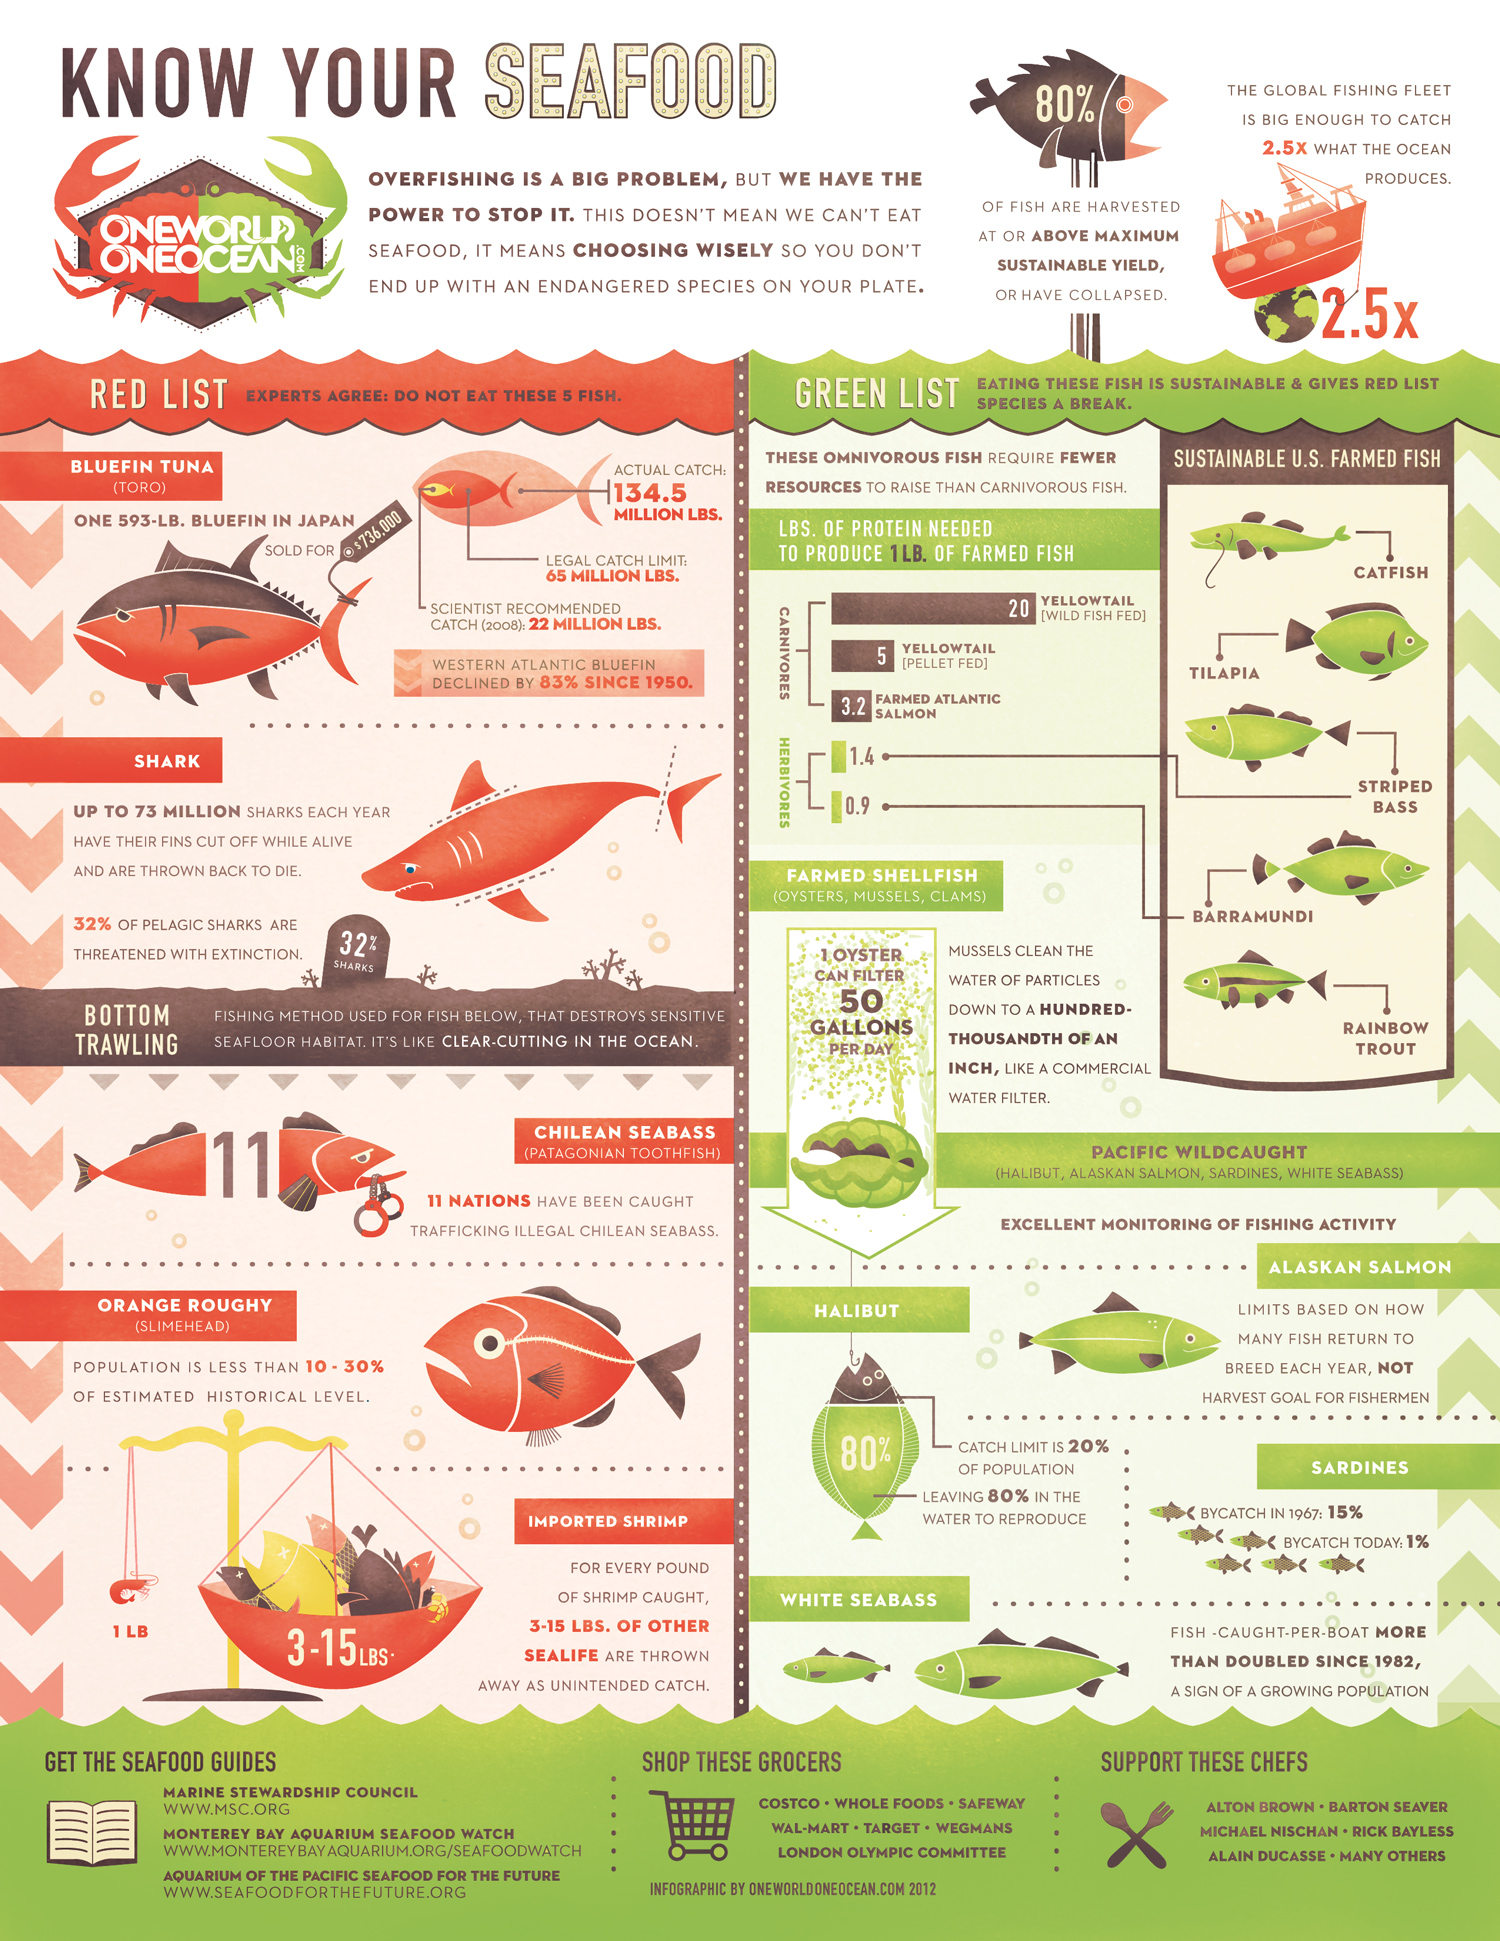 Know Your Seafood Infographic - Click to Enlarge